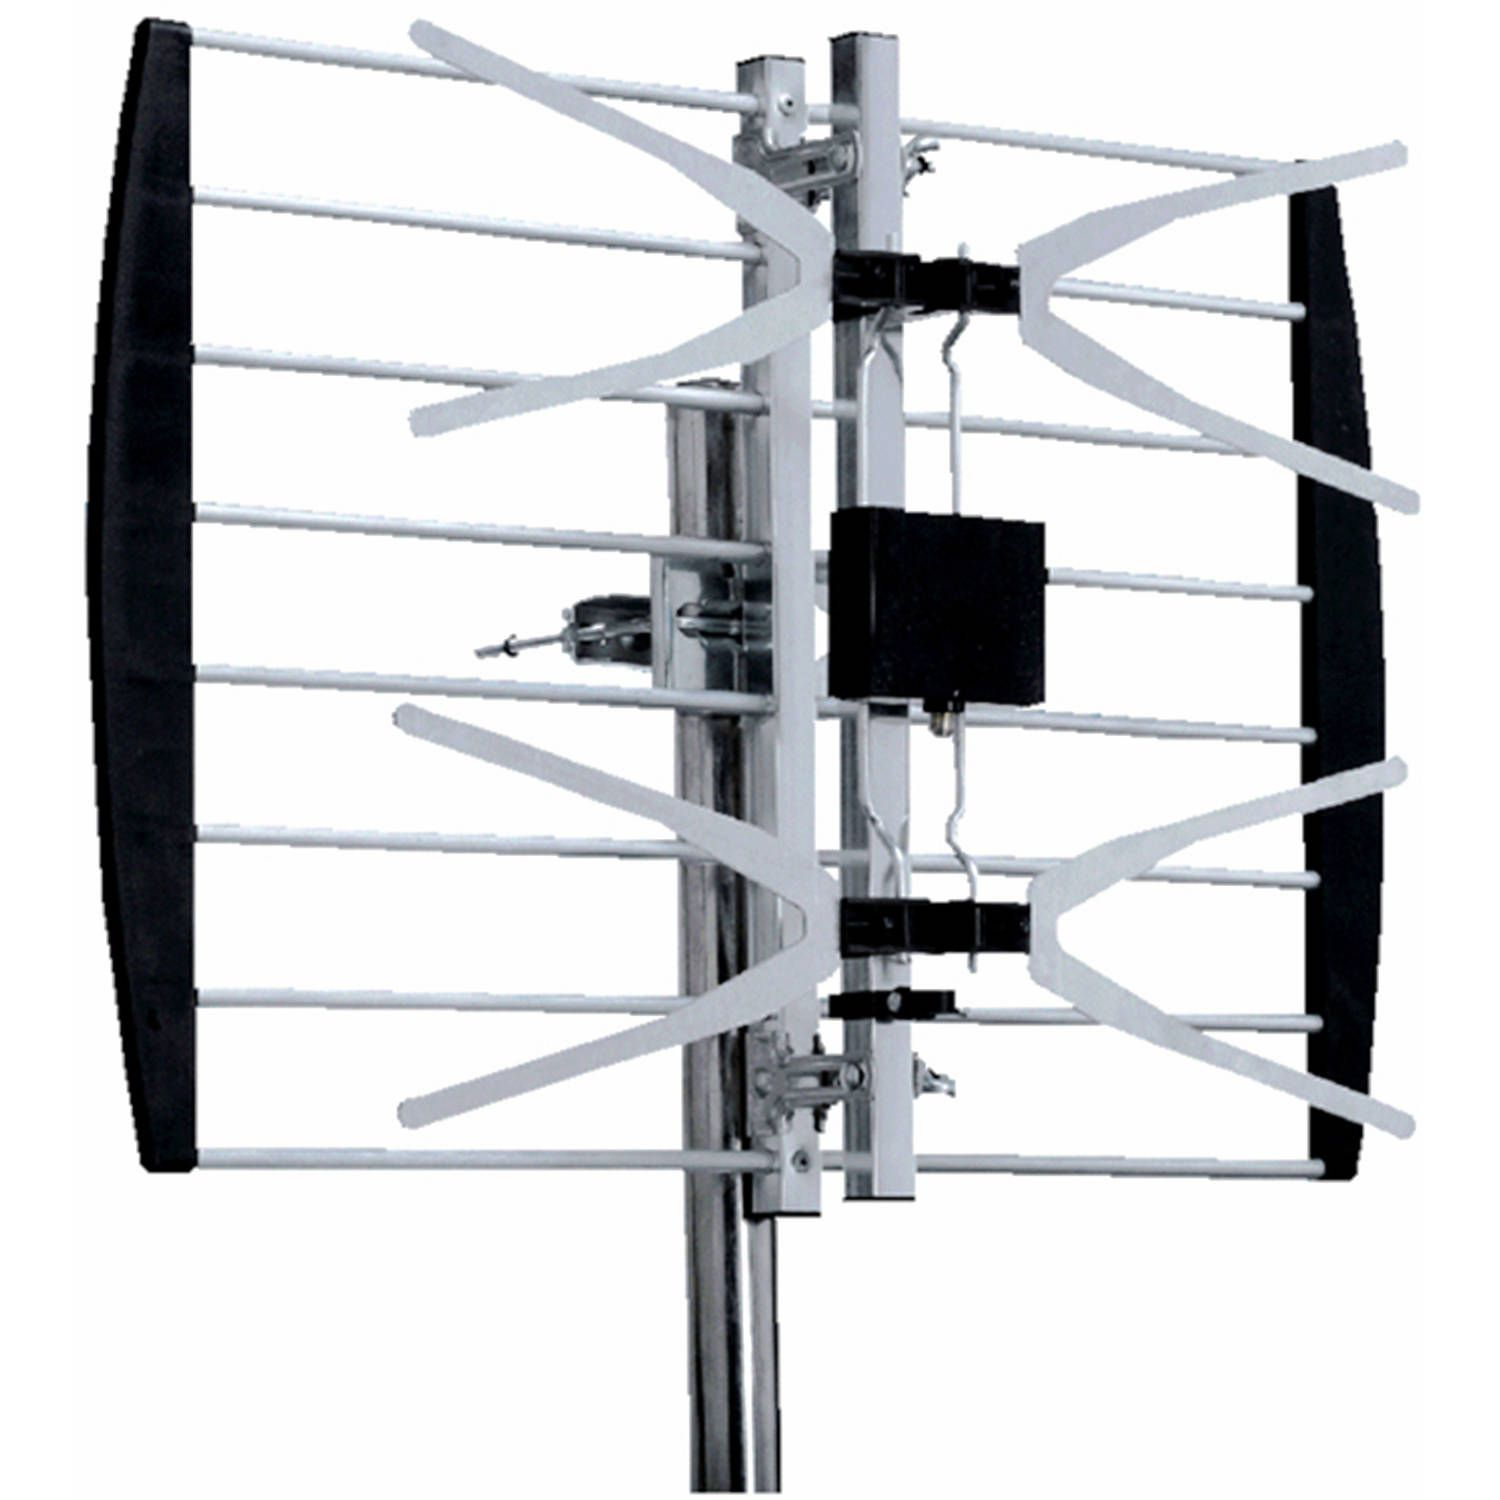 The 8 Best Walmart Tv Antennas Of 2019 Aerials Satellite Digital Wide Band Aerial Plus Wiring Biggest Range For Price Digiwave Panel Uhf Antenna Ant2088